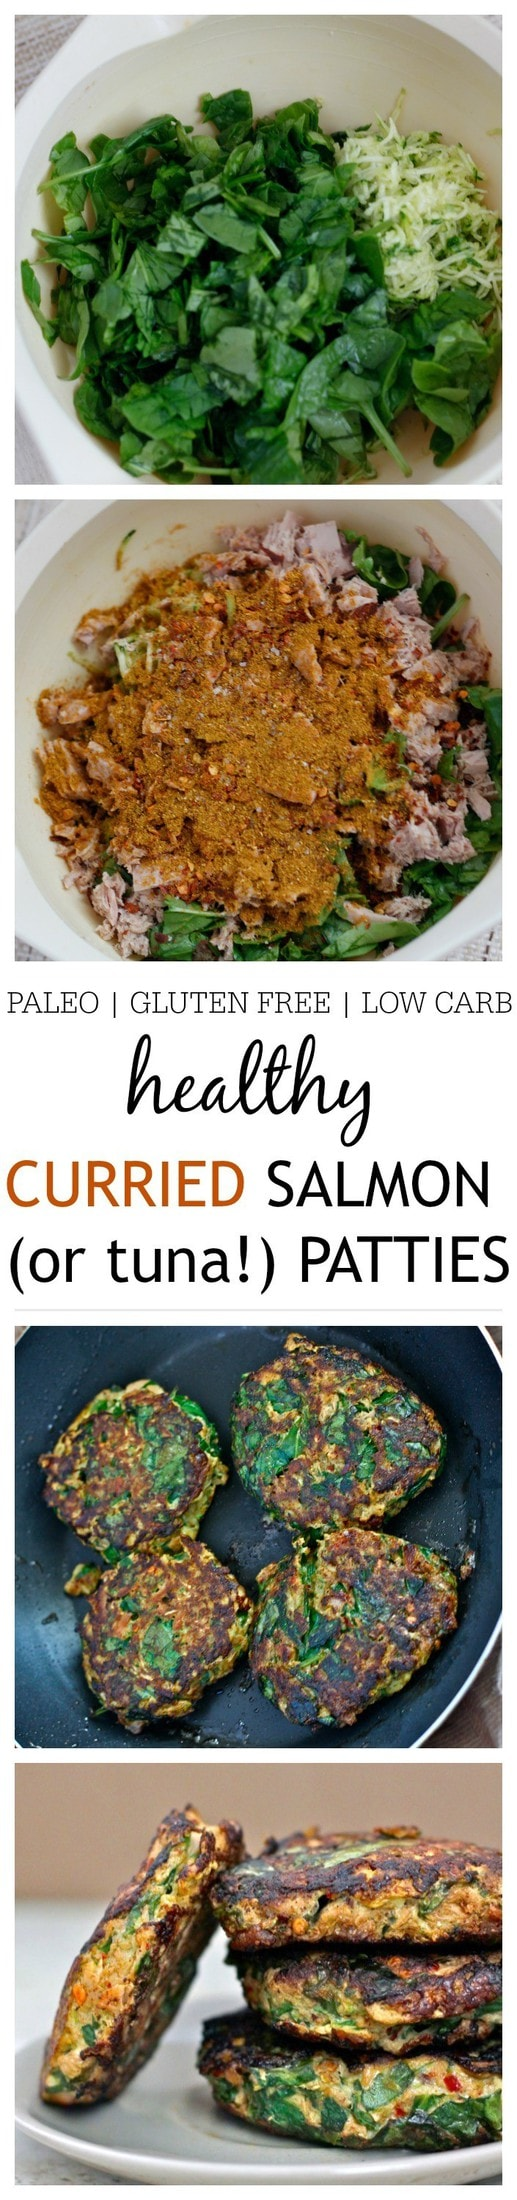 Healthy {Paleo} Curried Salmon (or tuna!) Patties- Just ten minutes is all you'll need to whip up these Curried Salmon (or tuna!) patties- No fancy ingredients and chock full of veggies, these patties are paleo, gluten free, grain free and low carb- You'd never believe these beauties started out from a can!  @thebigmansworld -thebigmansworld.com